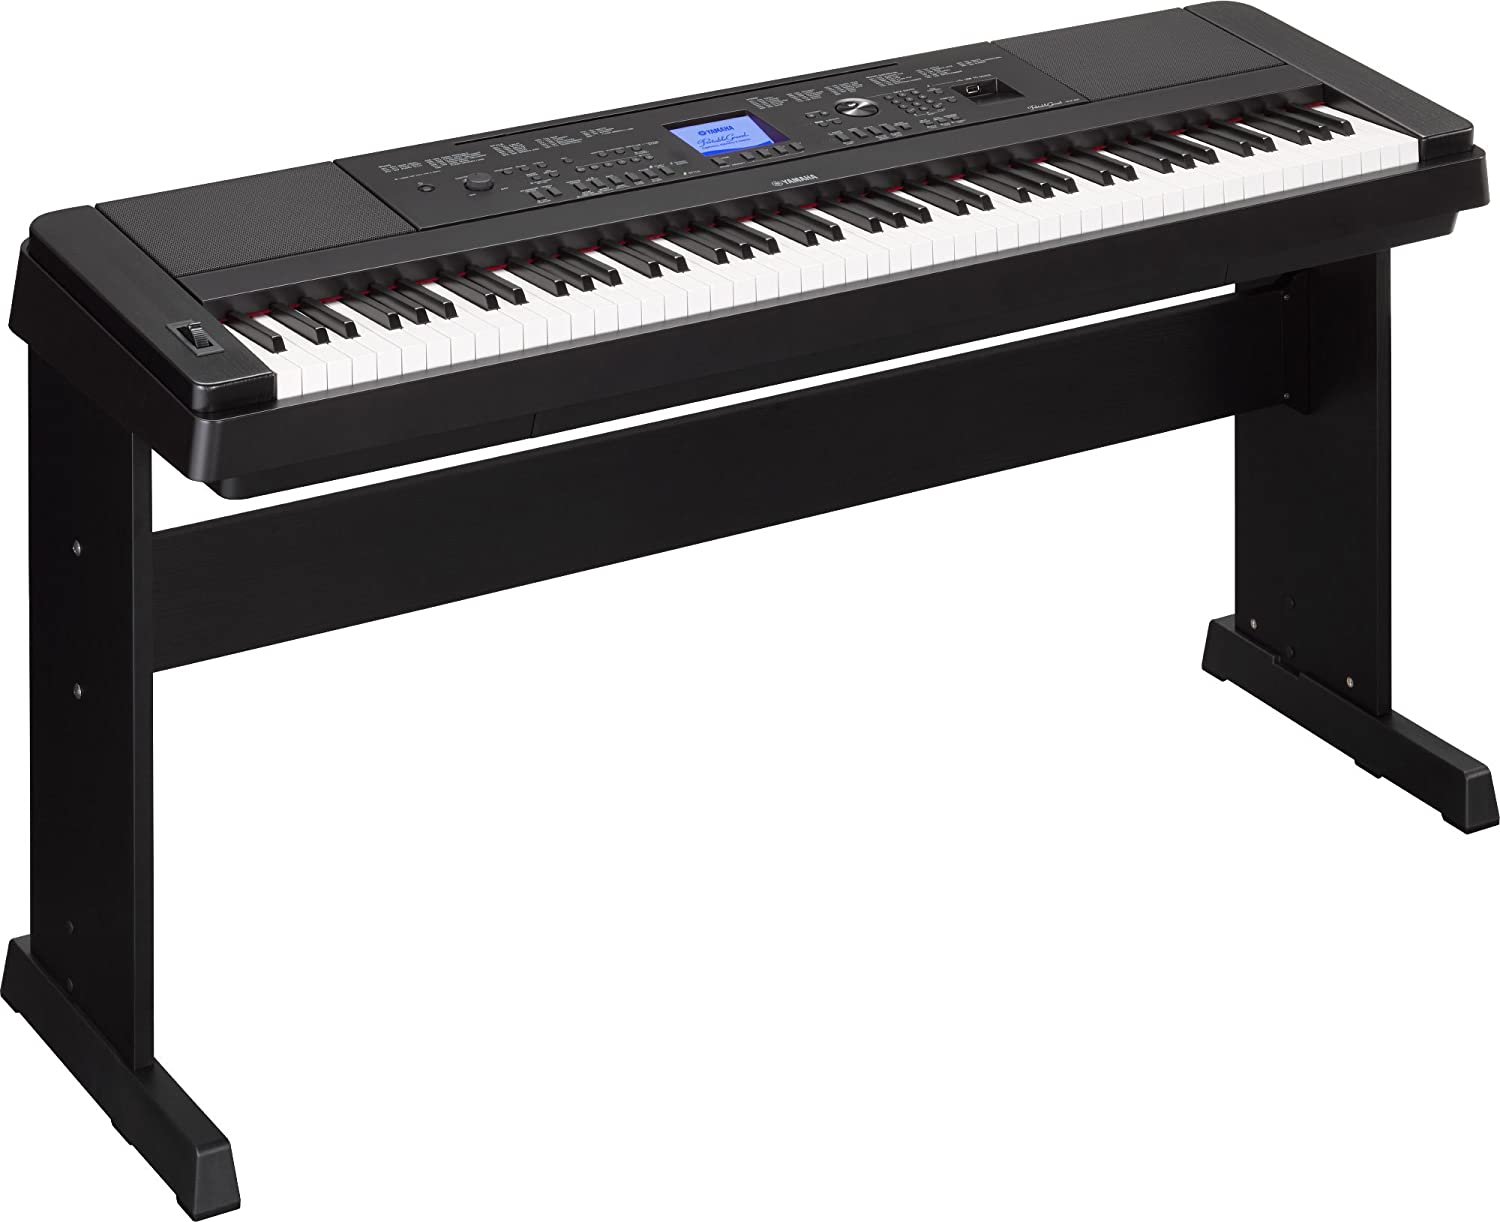 Yamaha Dgx660b 88 Key Weighted Digital Piano With Furniture Stand